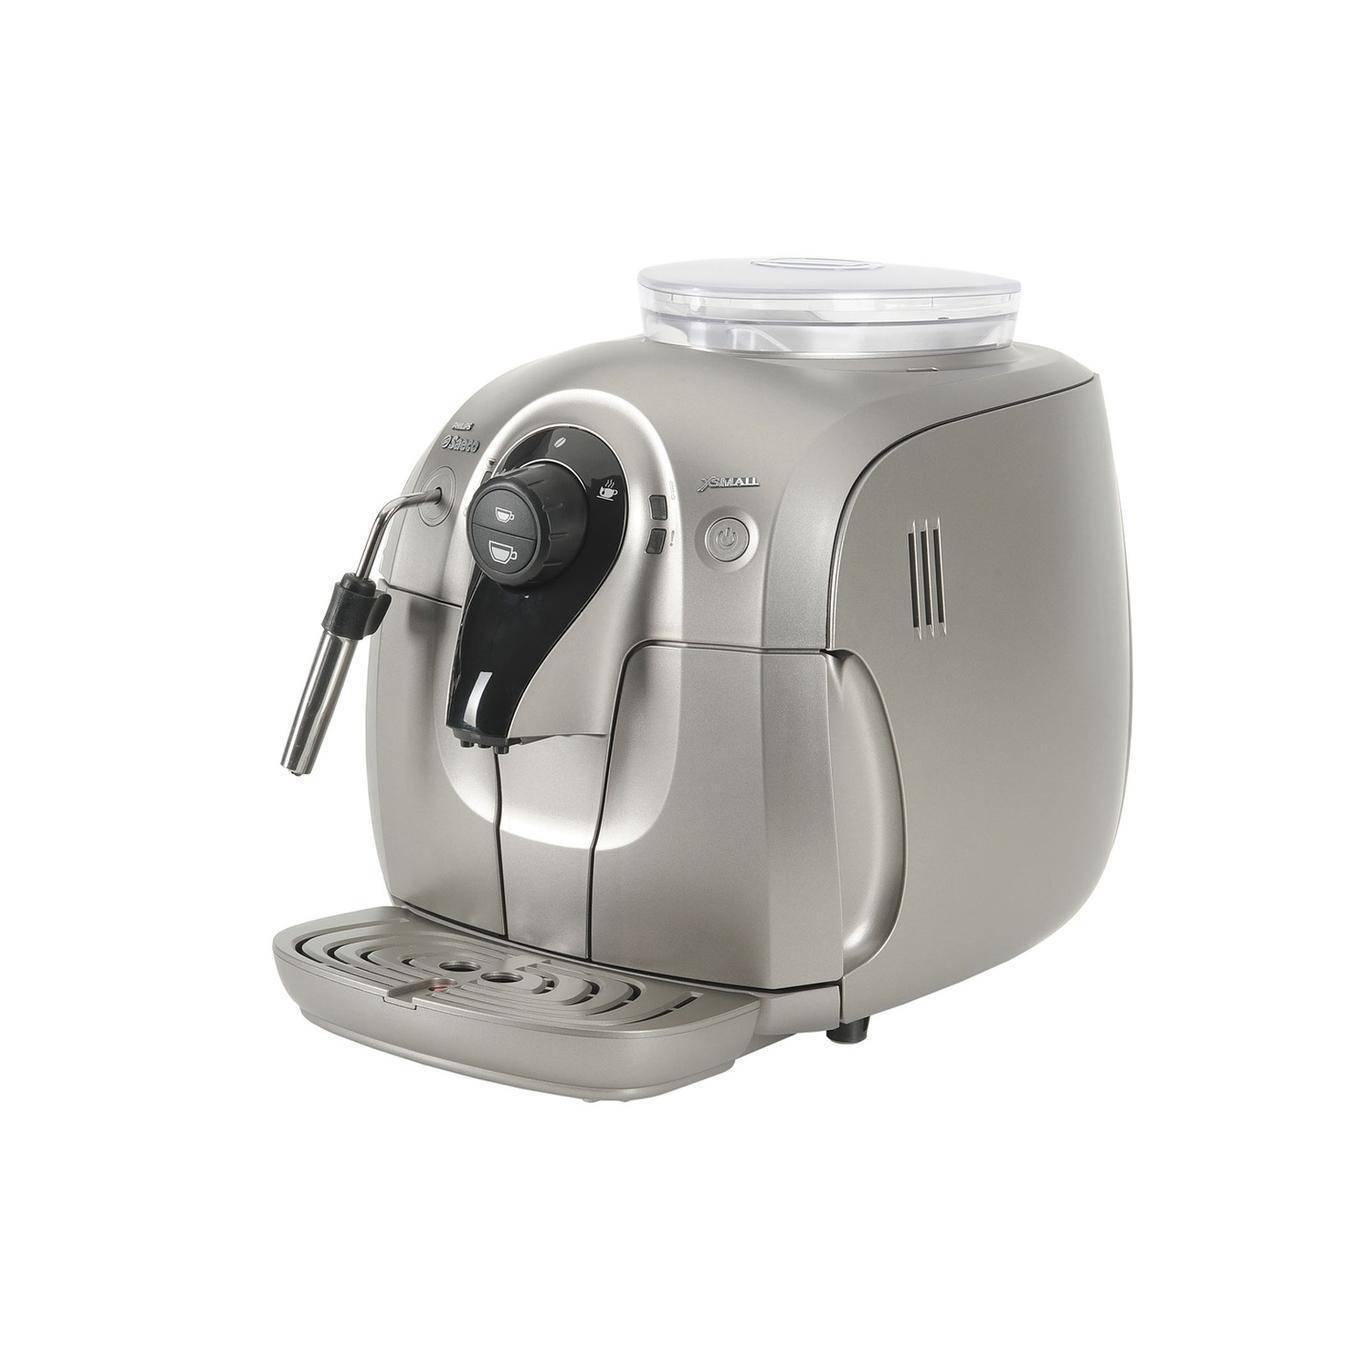 PHILIPS Expresso avec broyeur Philips Saeco HD8747/01